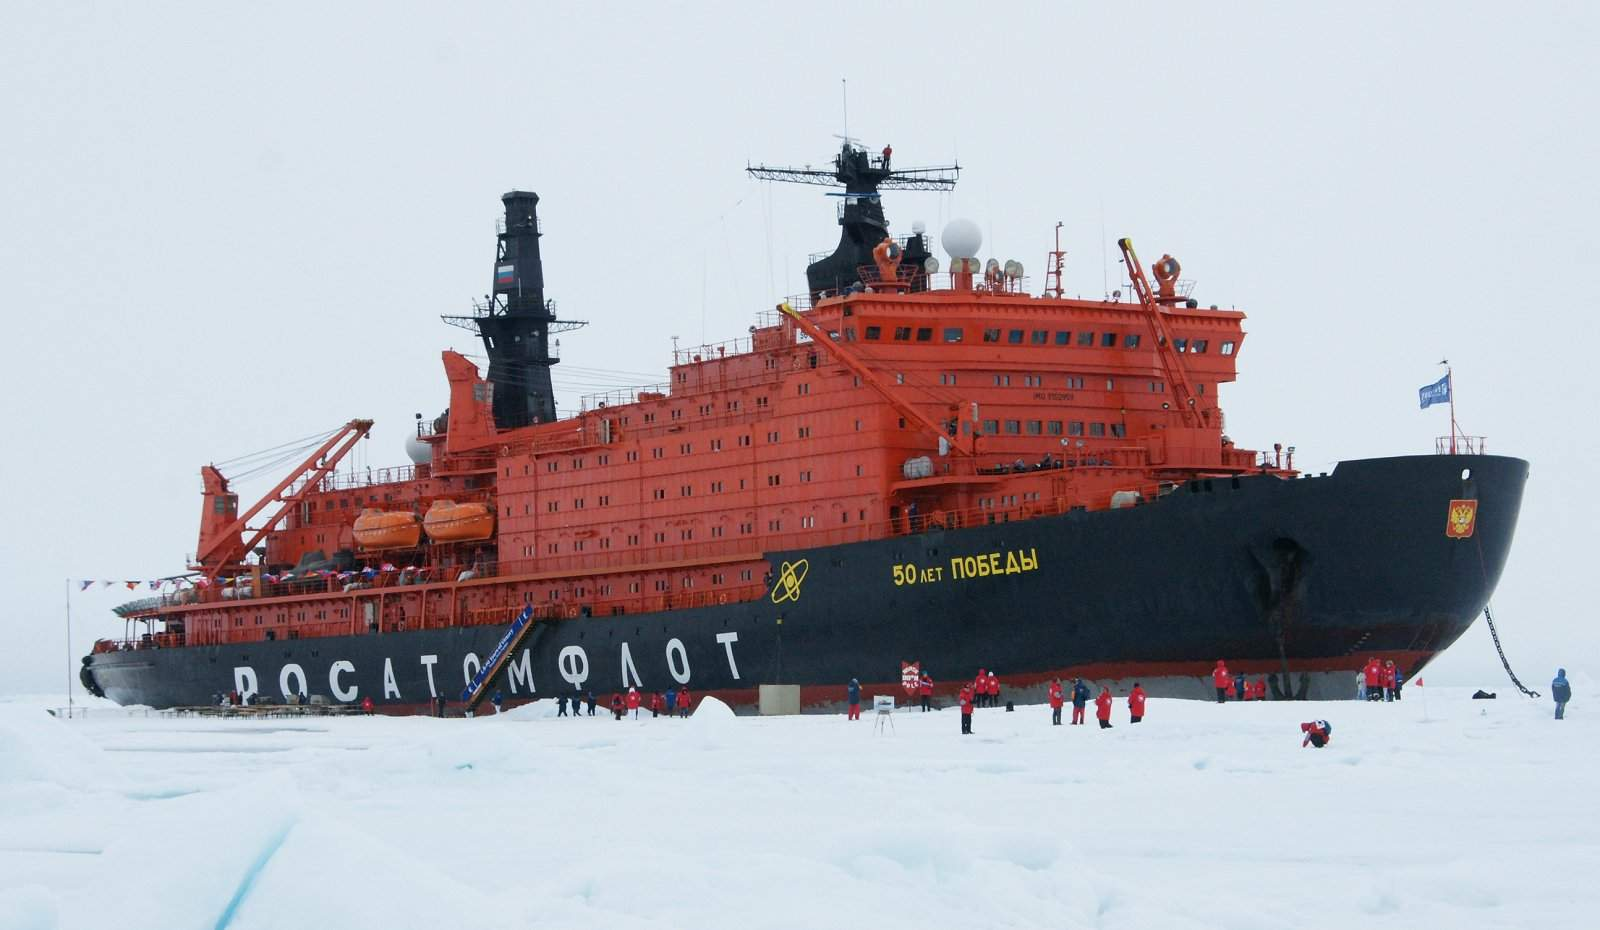 Russia is making a big push to militarize the Arctic